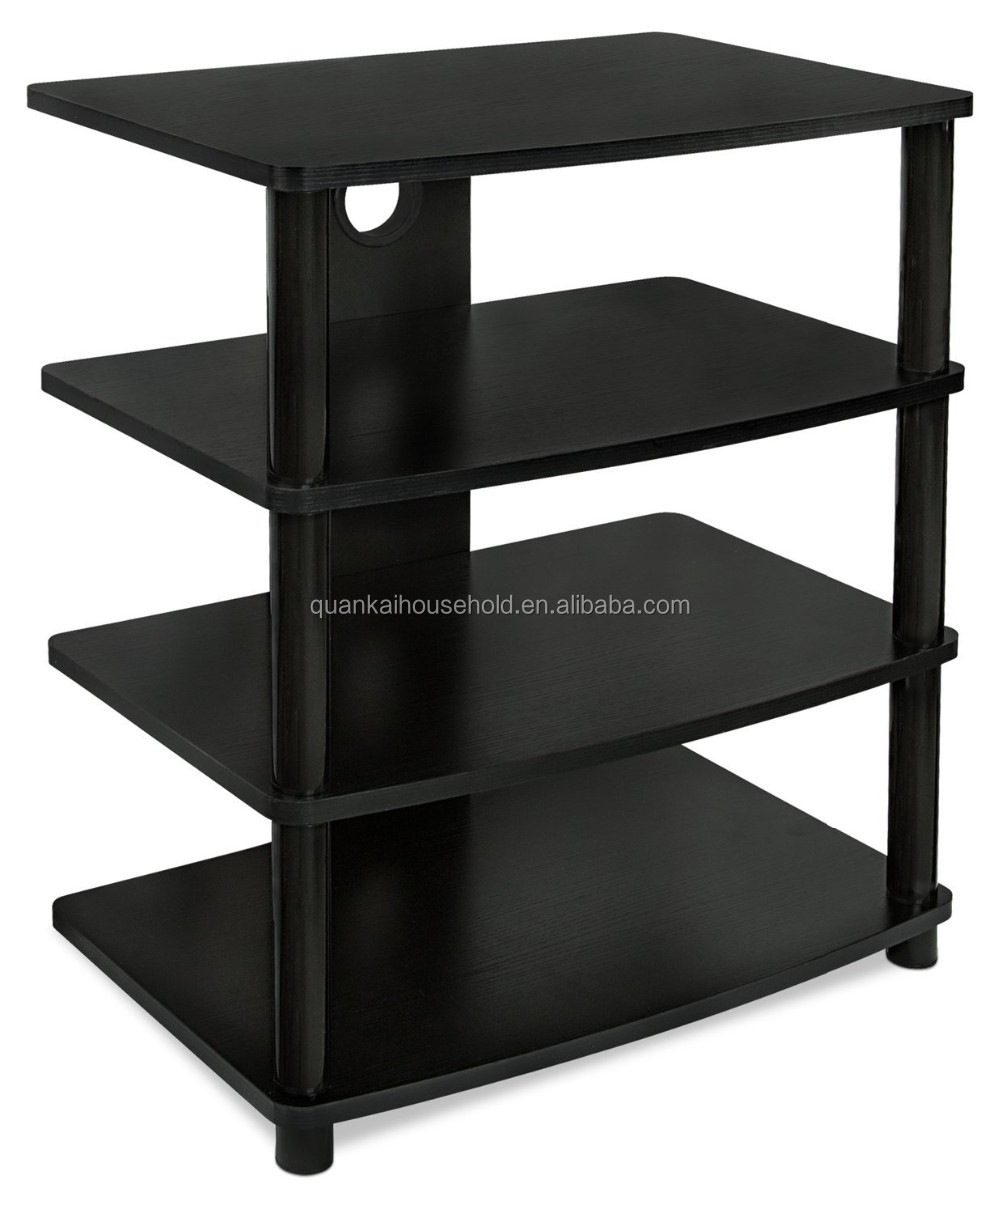 Video Component Stand TV Audio Stereo Cabinet Media Entertainment Center 4-Shelf